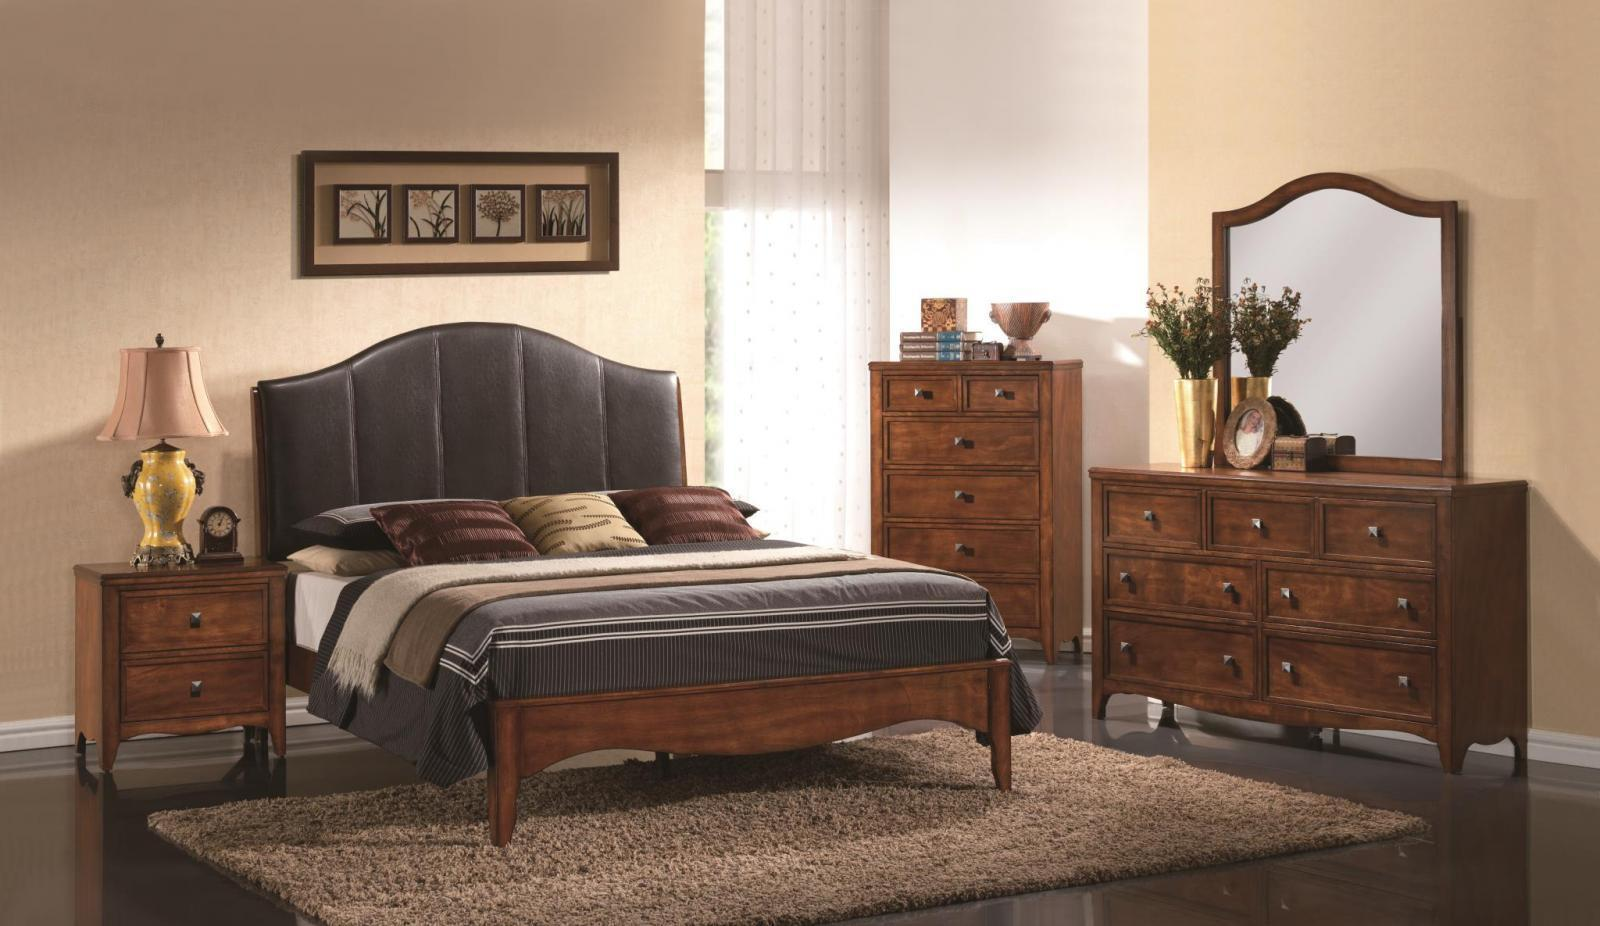 MYCO Furniture VN2900Q Vivon Cherry Black Leather Queen Bedroom Set 5Pcs w/Chest